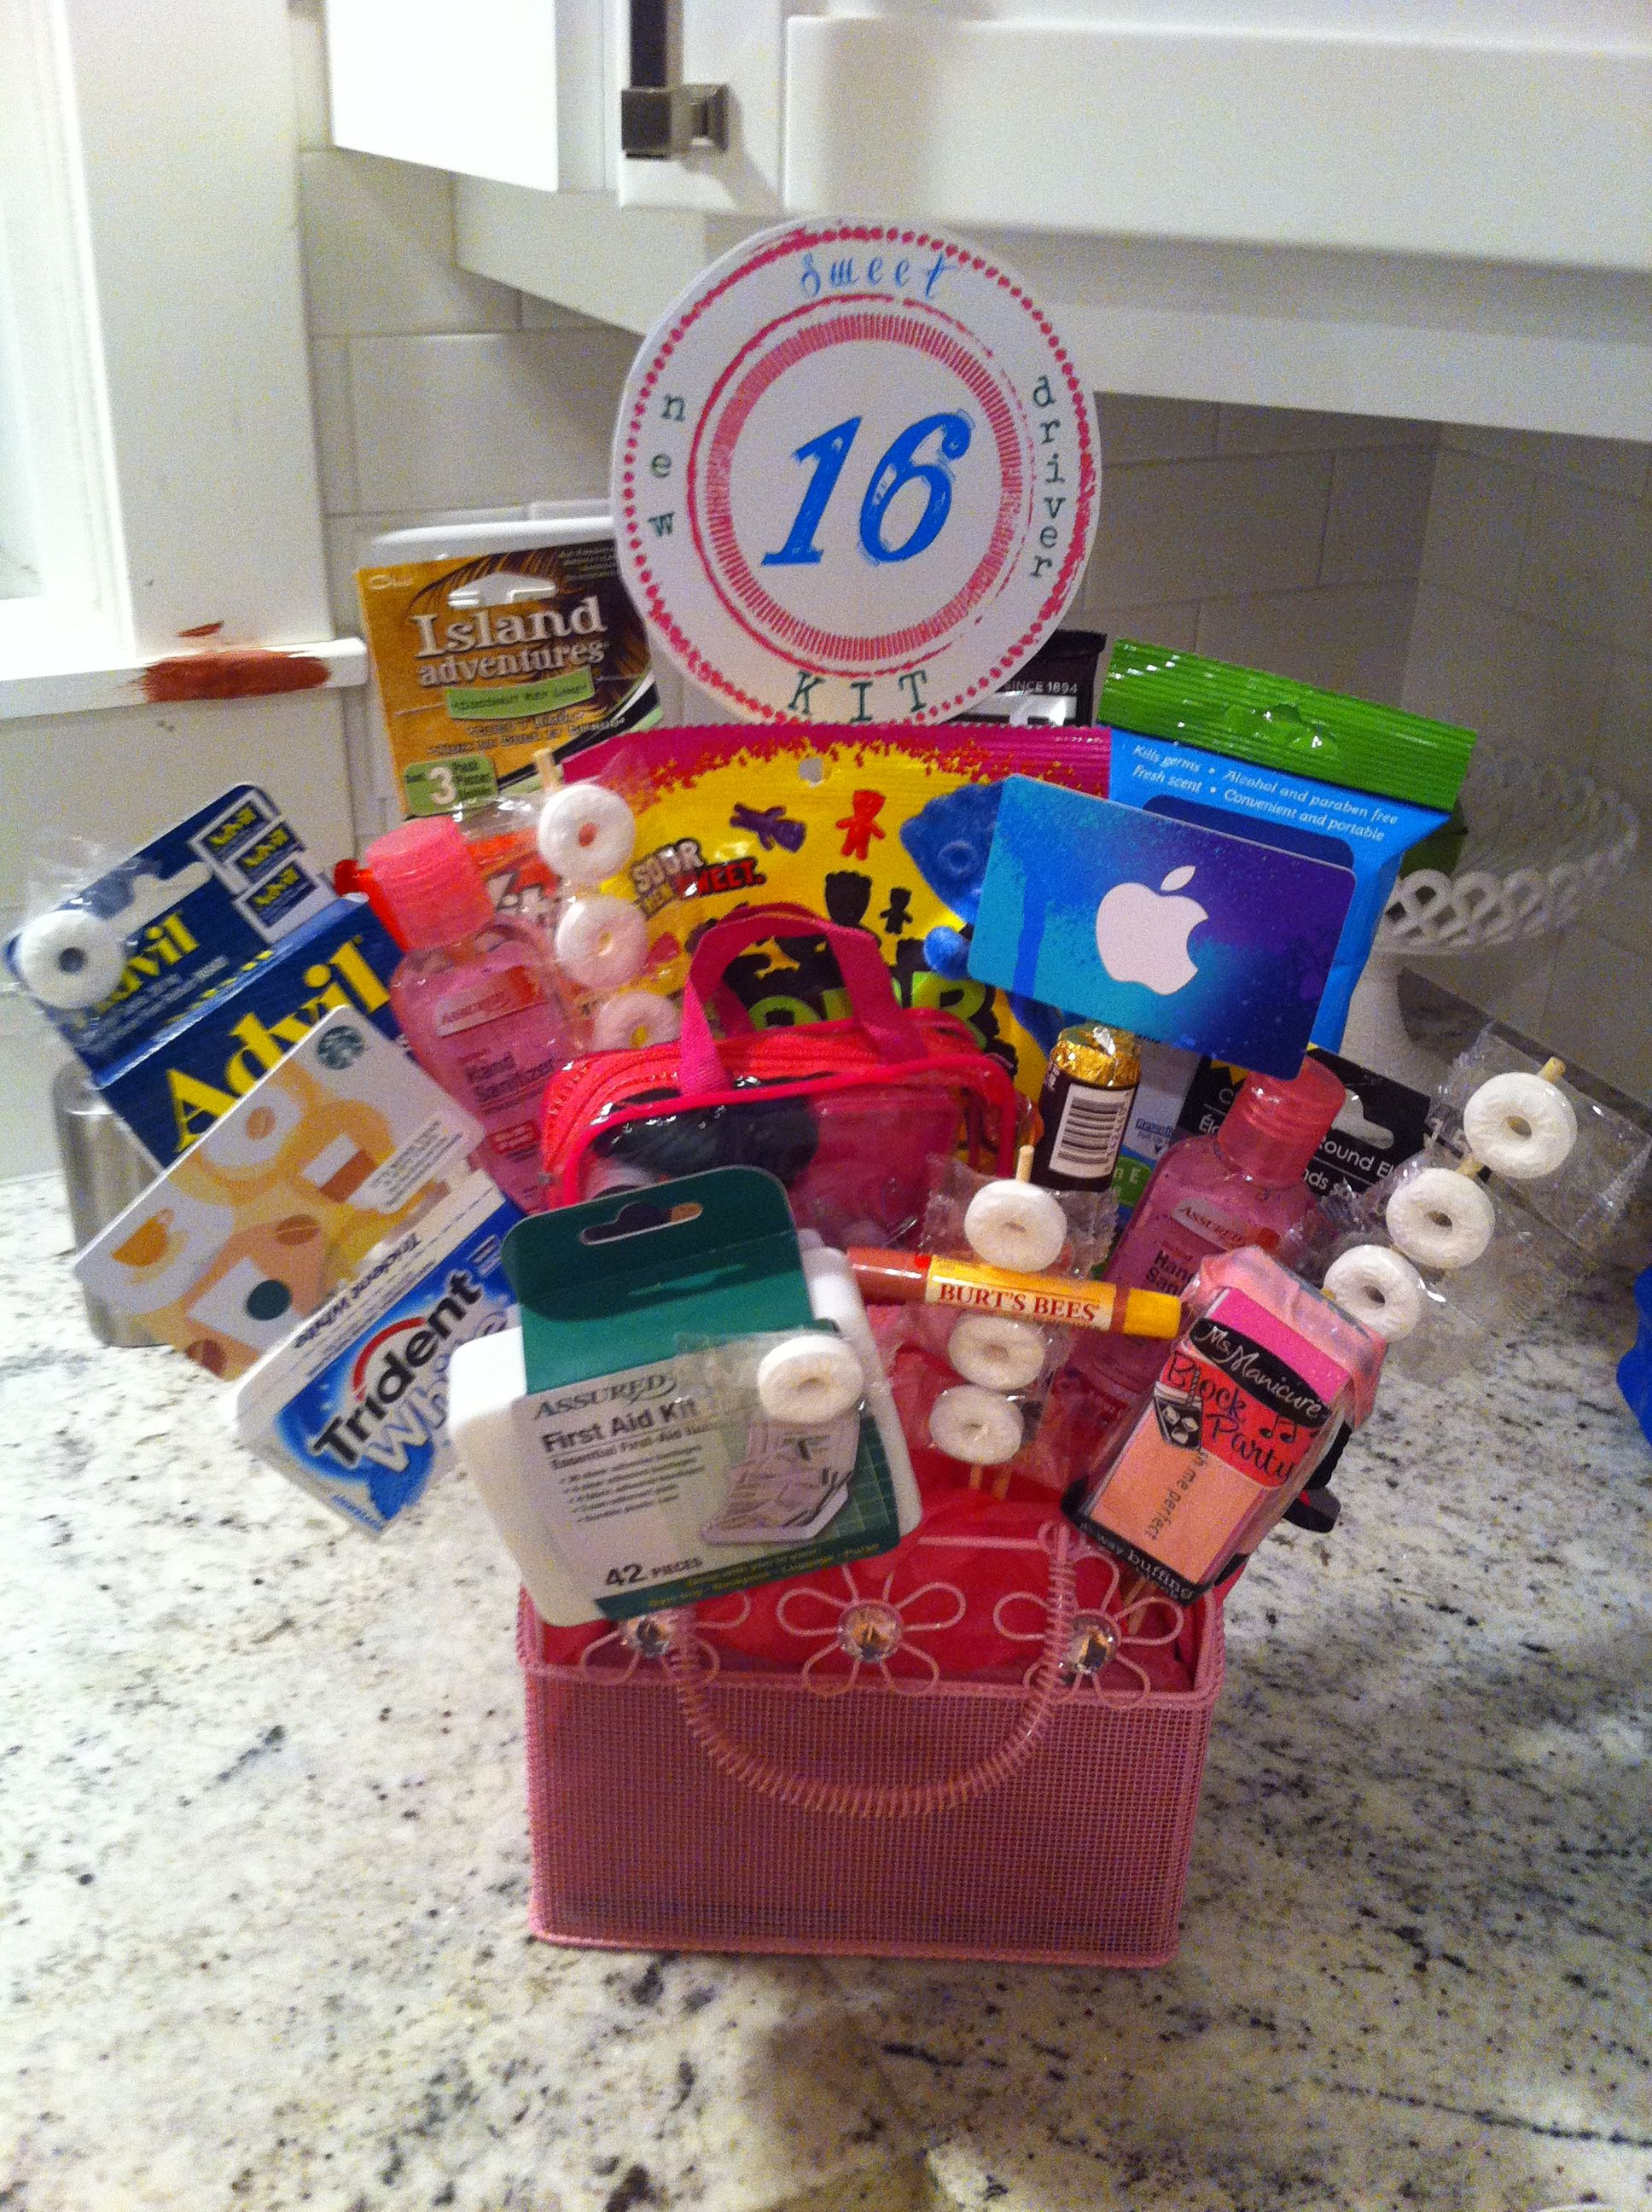 Great way to celebrate sweet 16 new driver gift bouquet